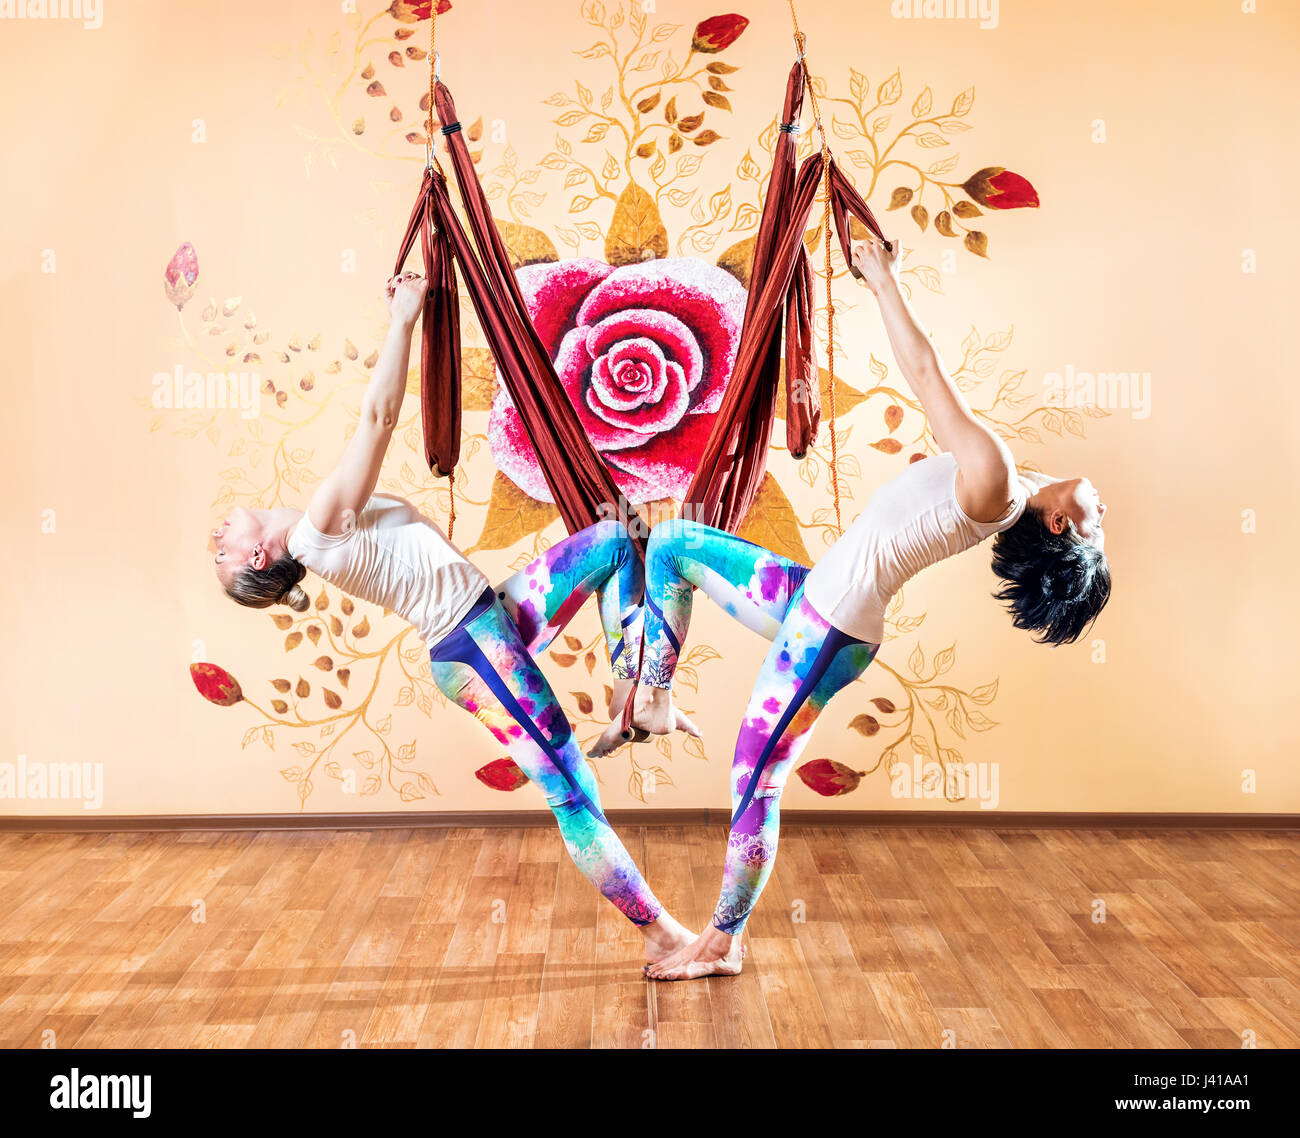 Two Young woman doing antigravity yoga back bending in hammock at wellness studio with rose on the wall - Stock Image